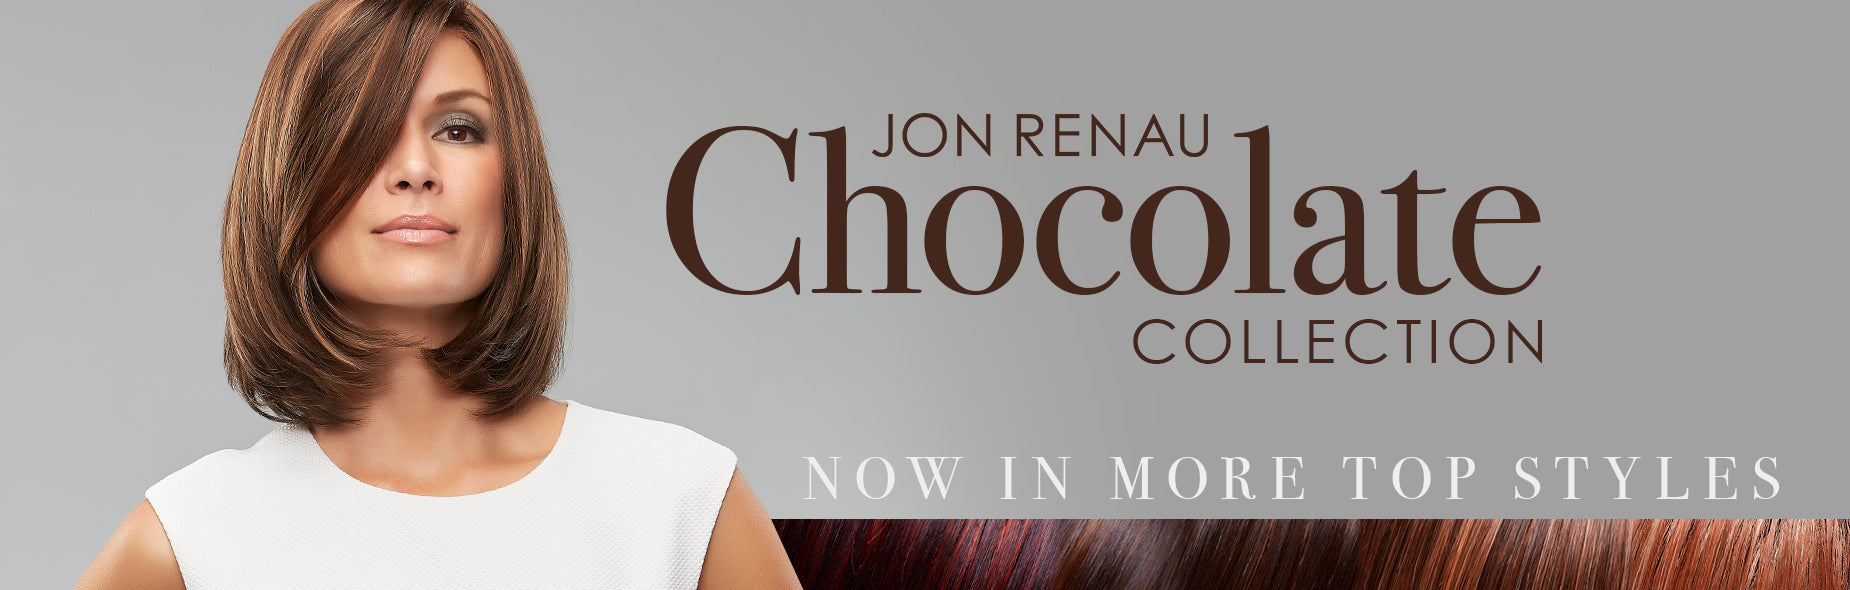 Chocolate Collection by Jon Renau | NEW Colors